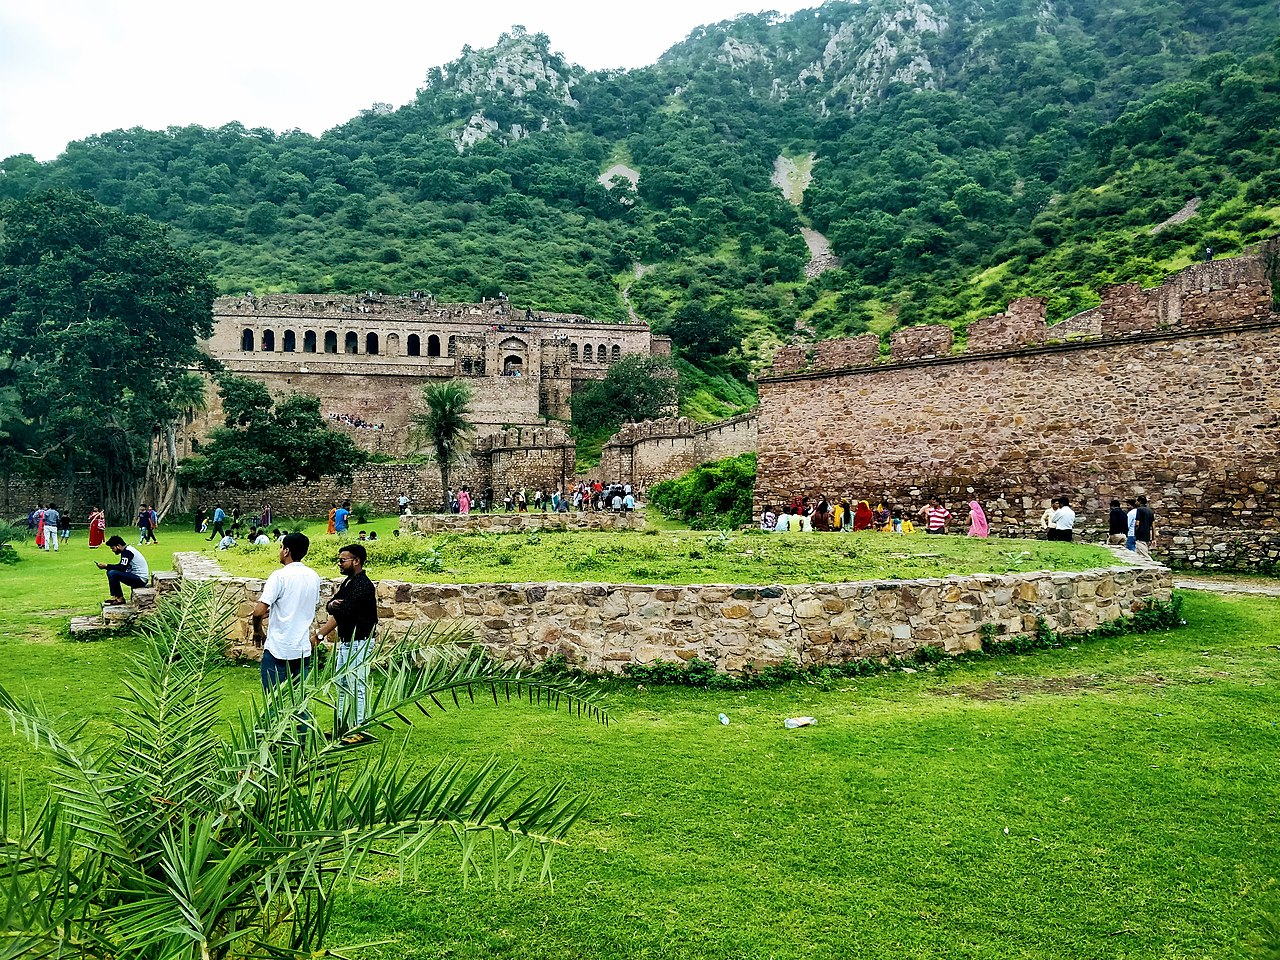 History of Bhangarh Fort, Rajasthan